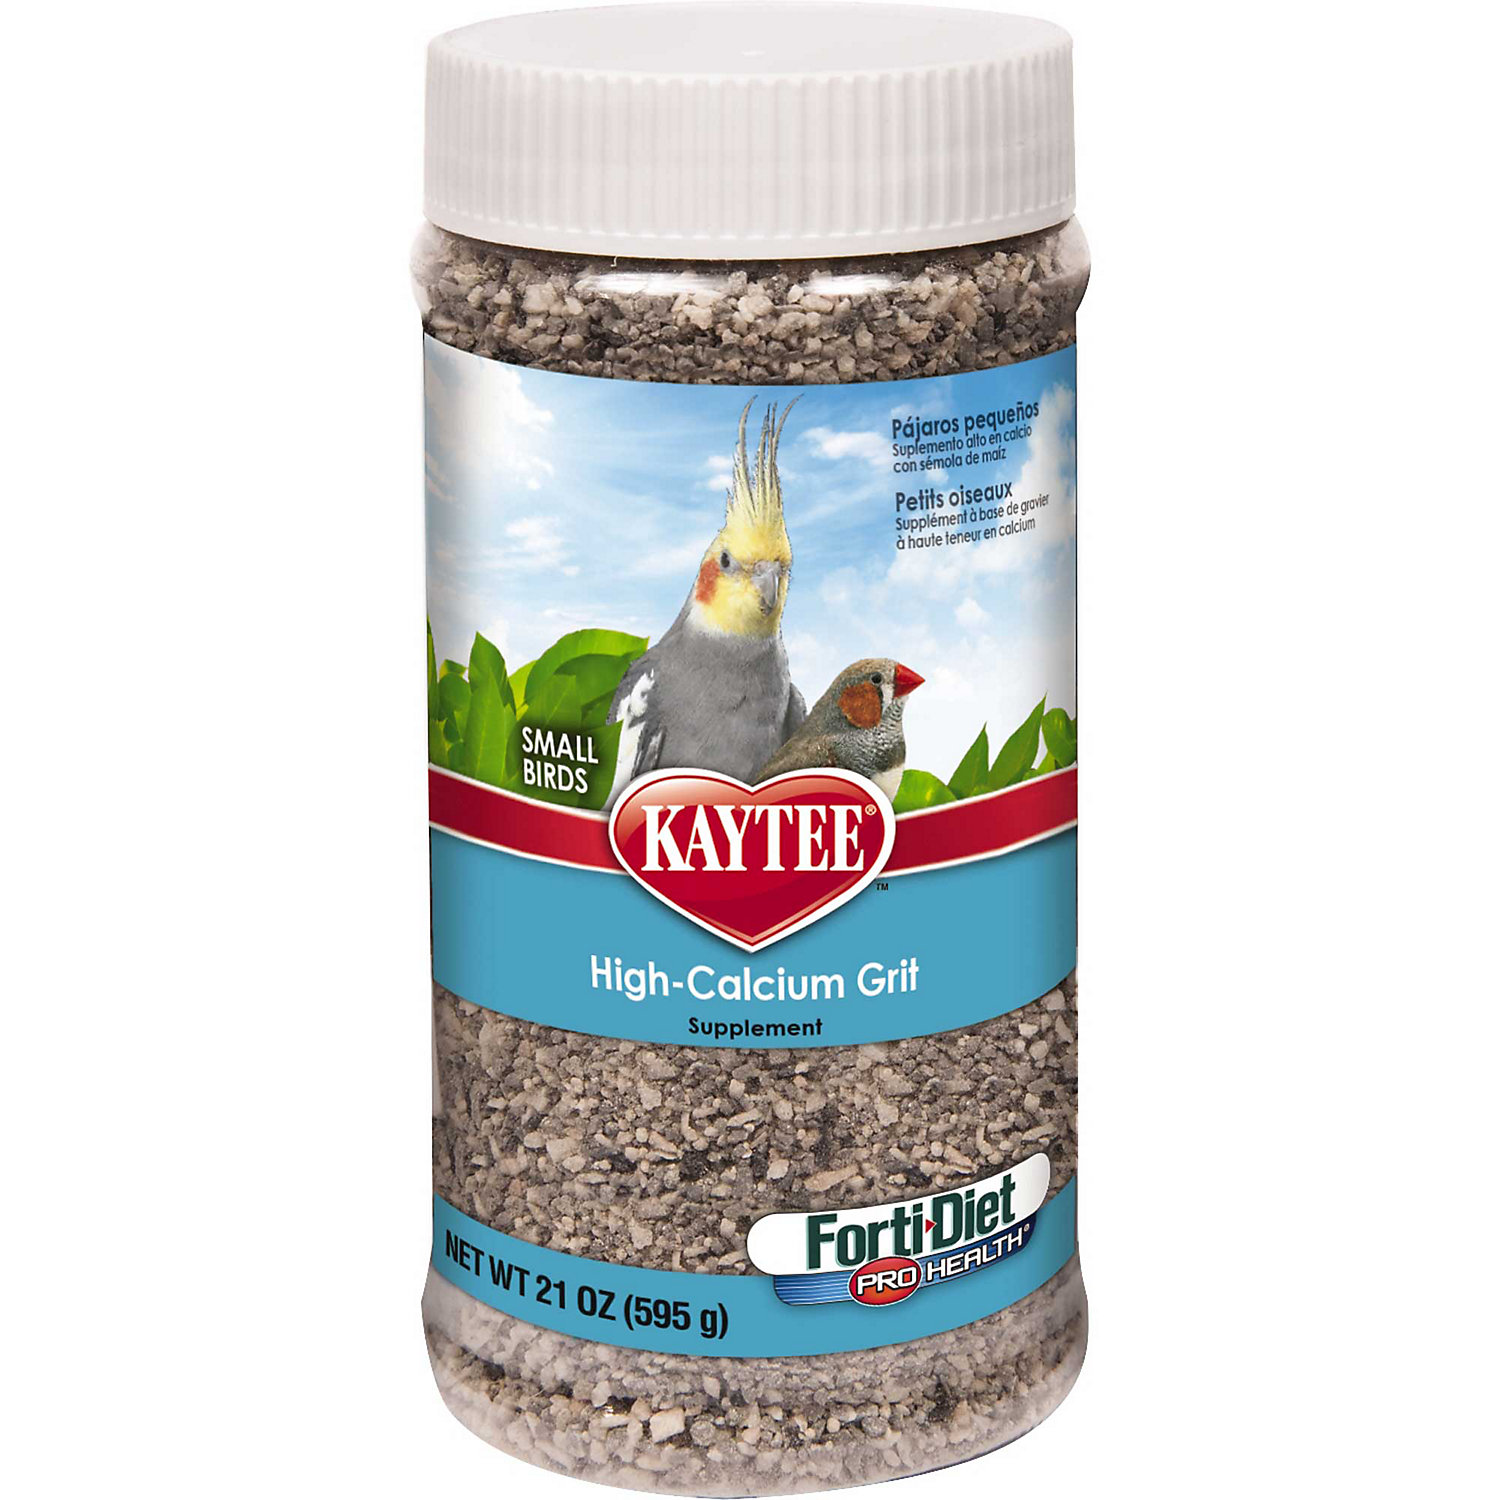 Kaytee Forti Diet Pro Health Hi Cal Grit Supplement For Small Birds